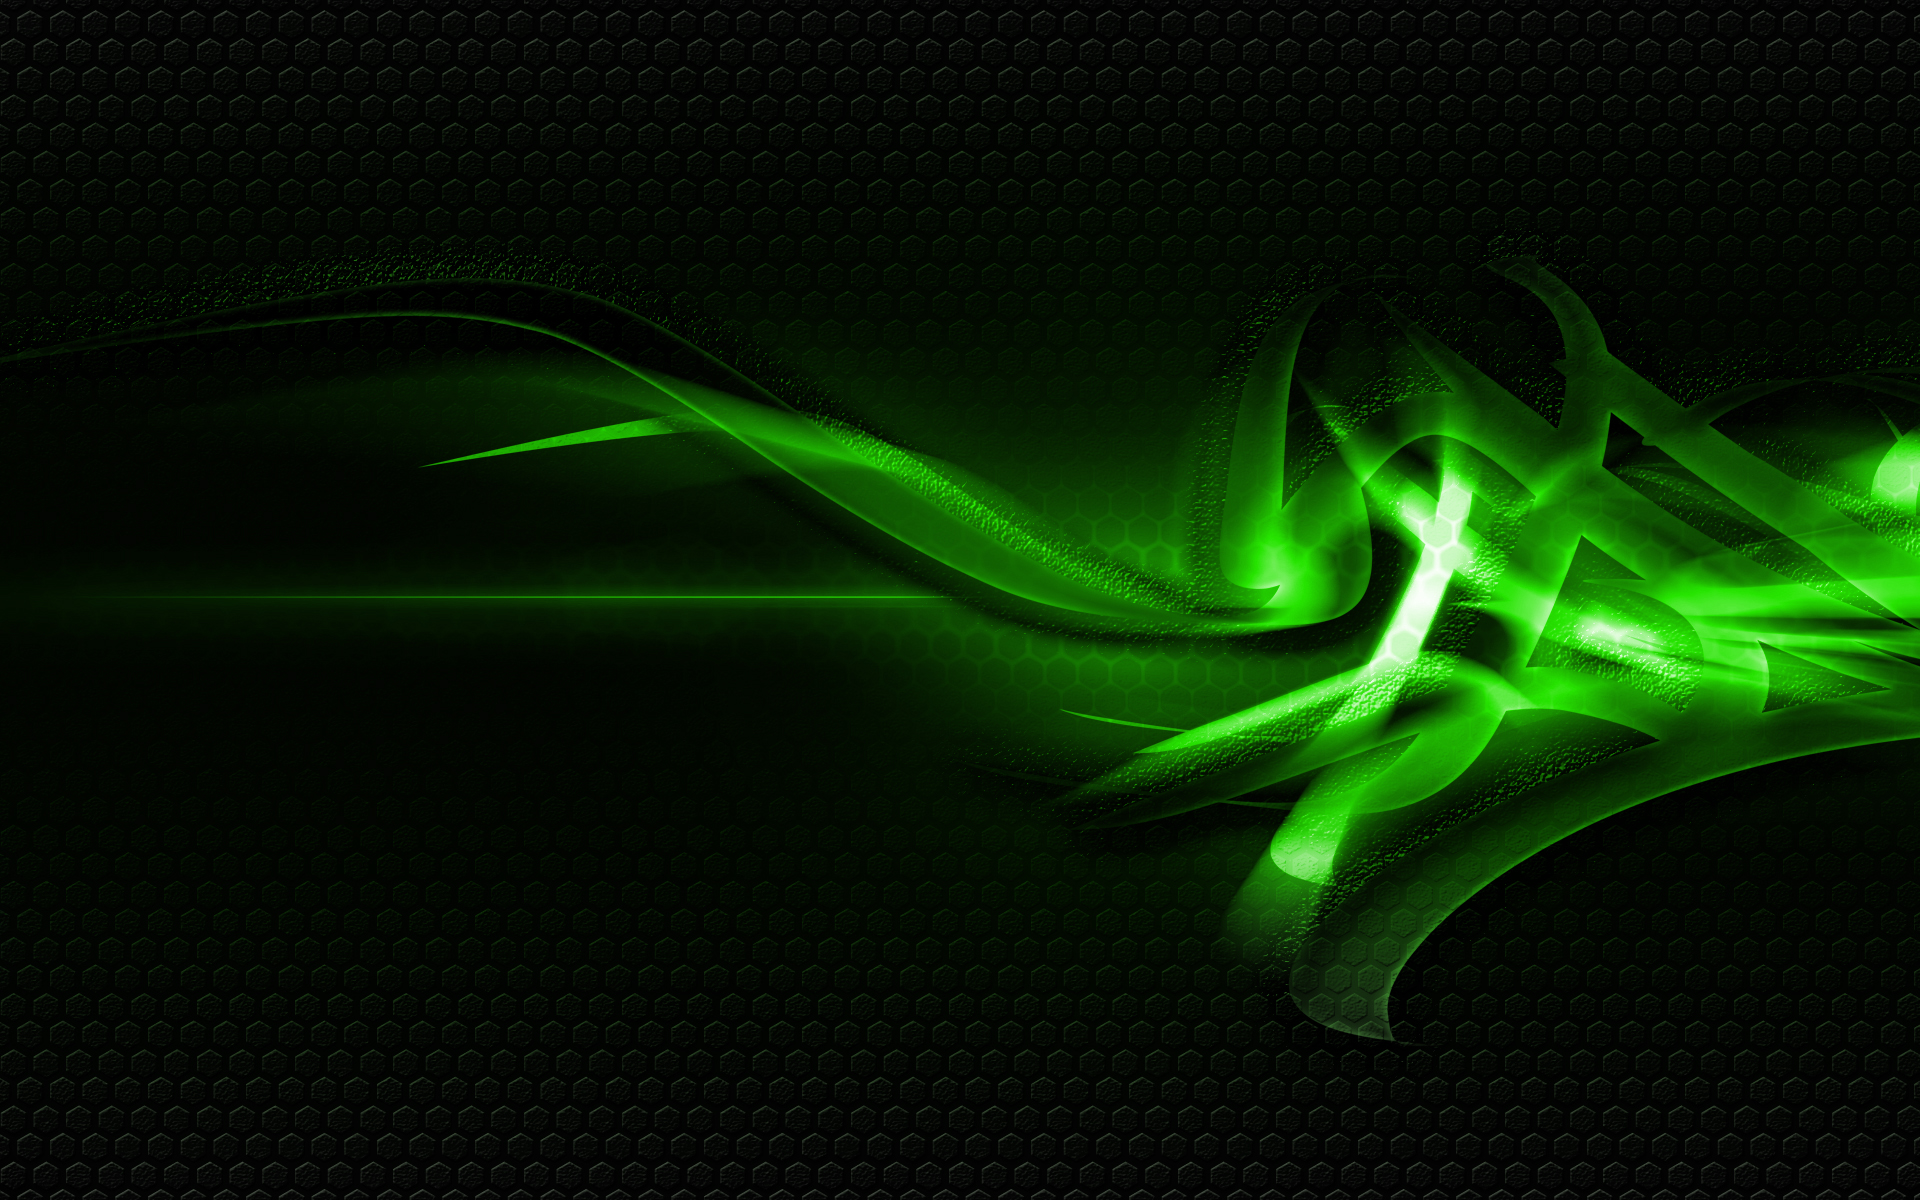 green and black abstract wallpaper 41 background green and black abstract wallpaper 41 background